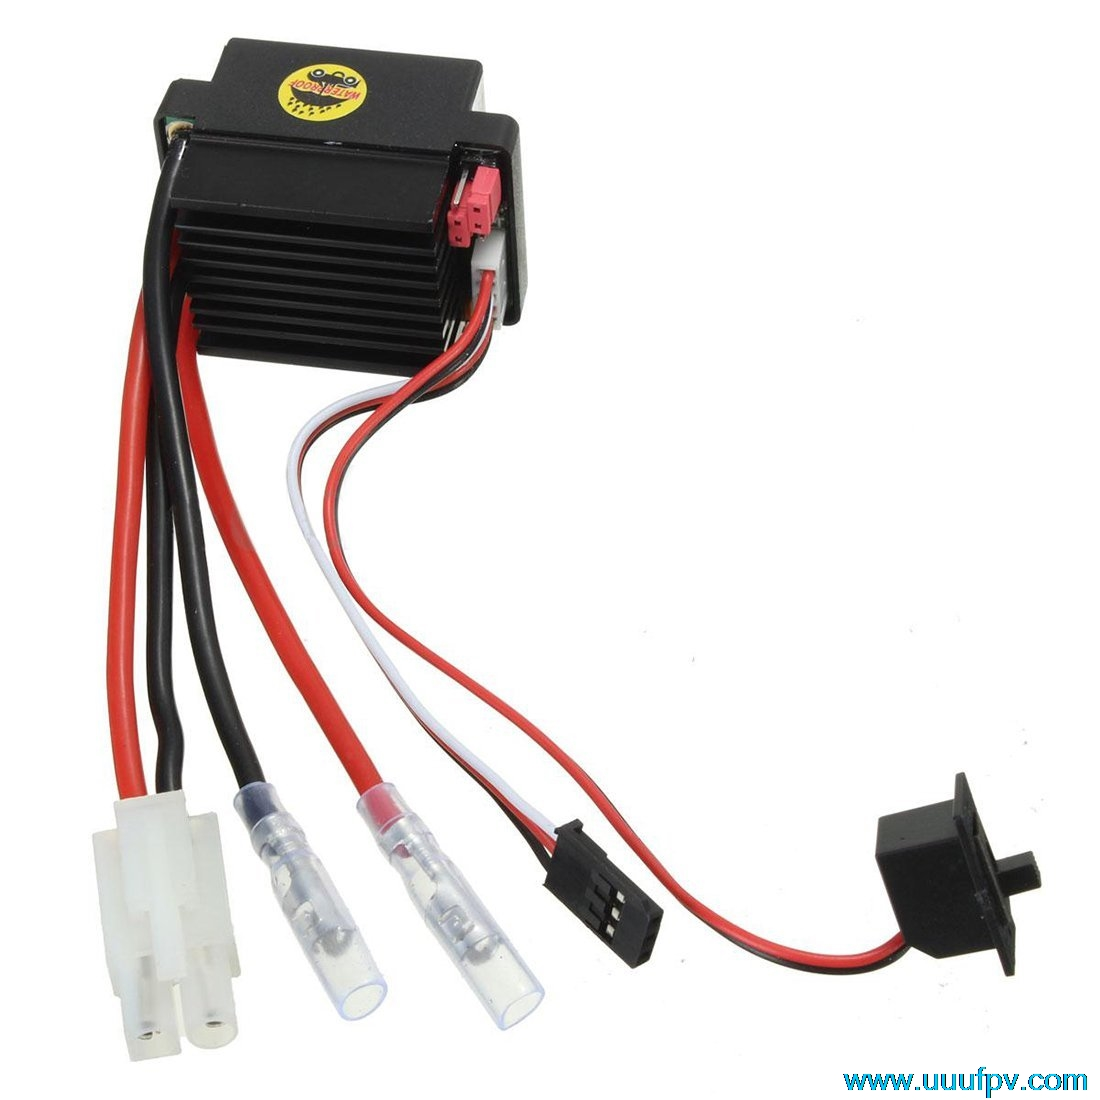 HSP HPI 320A ESC Brushed Electric Speed Controller 3S High Voltage Waterproof RC Car Boat Airplane HSP Truck Buggy Car